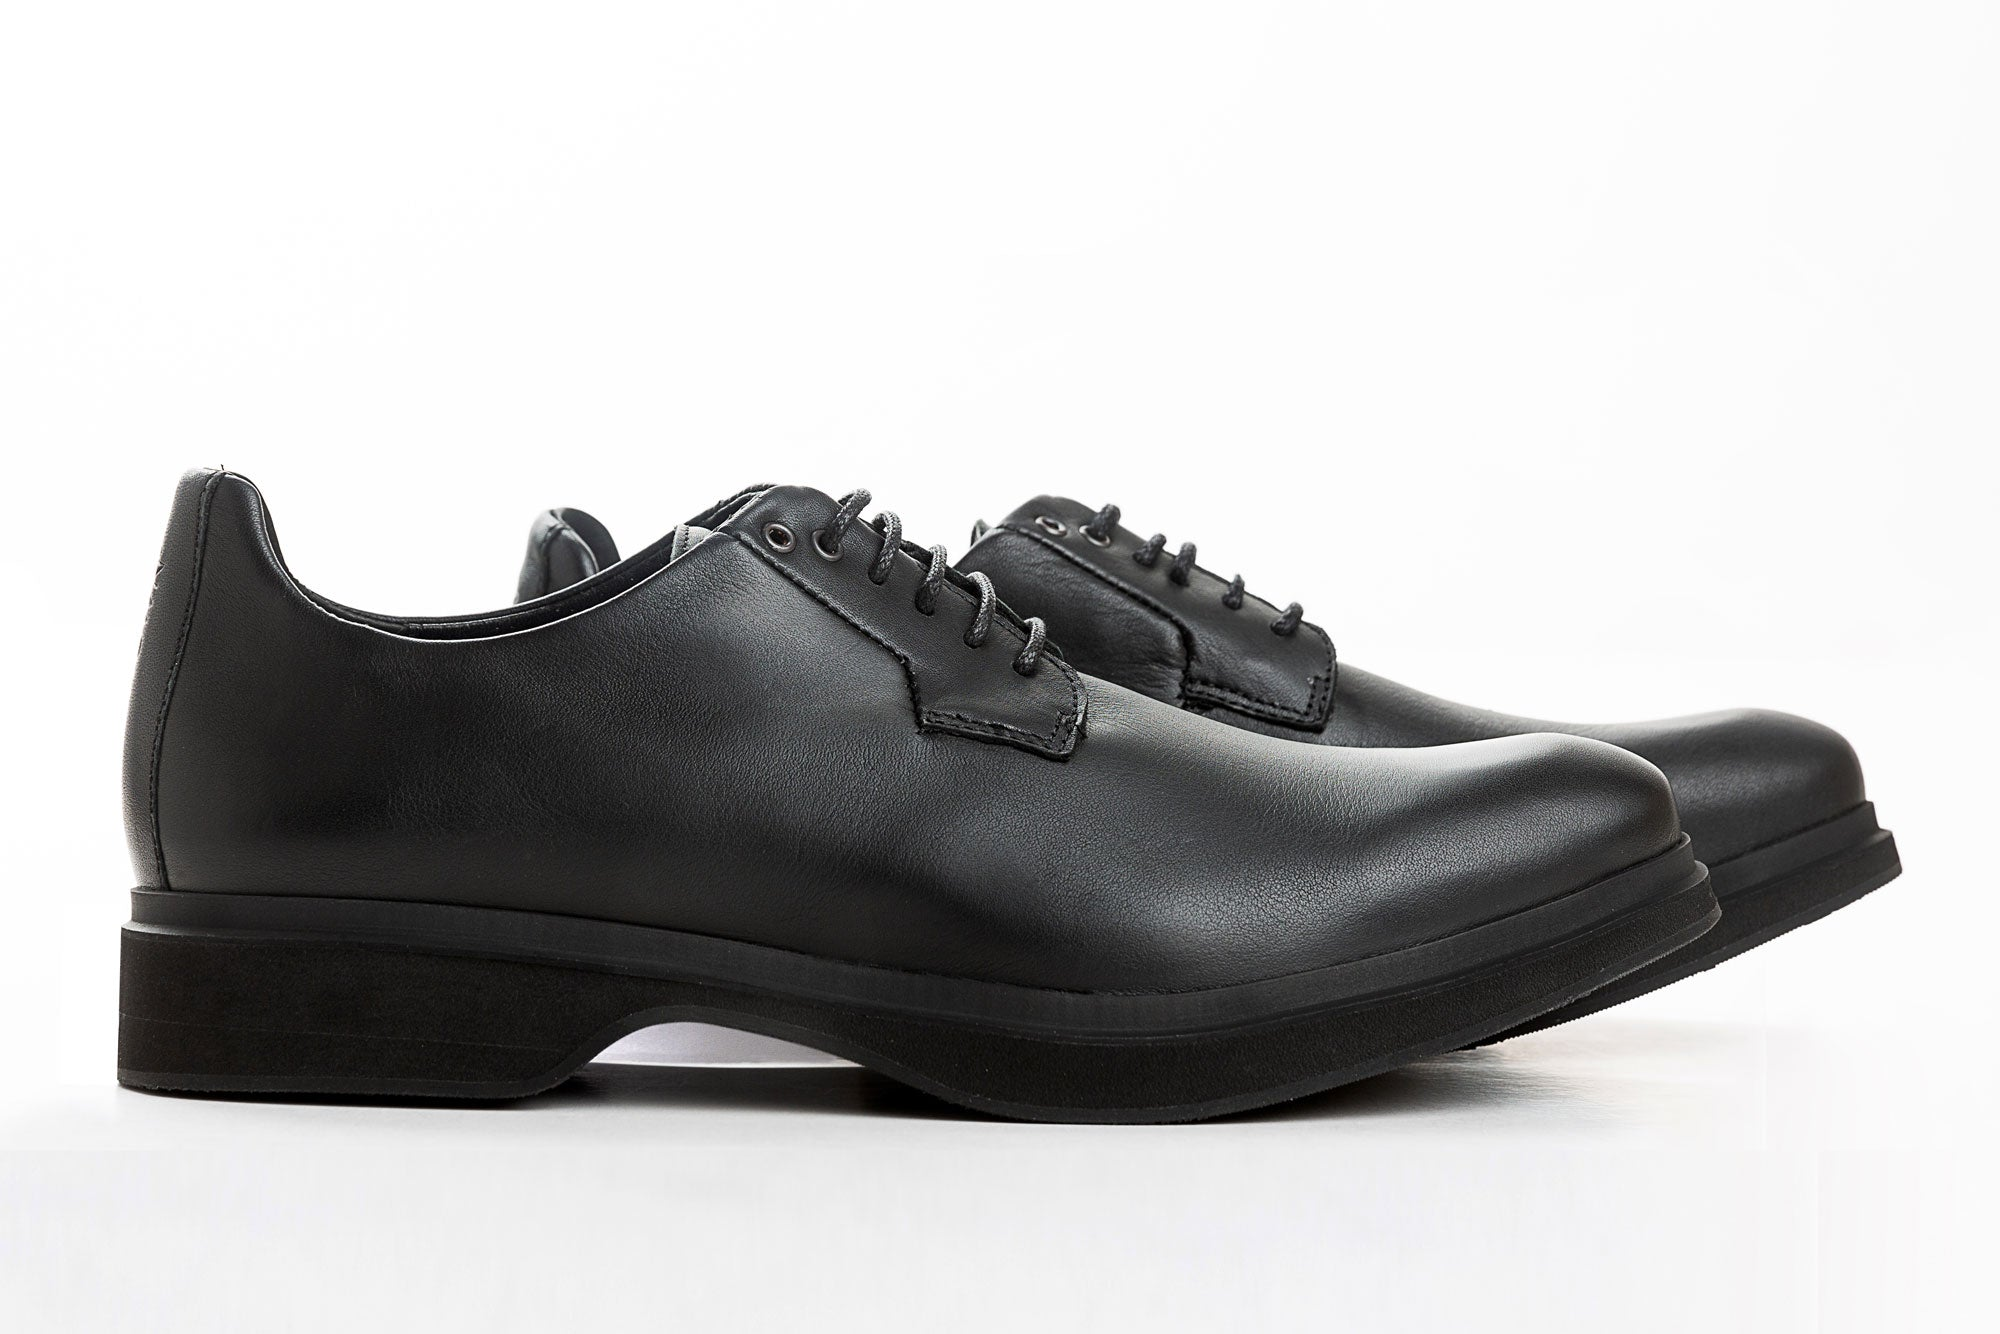 Most-comfortable-mens-dress-shoes-for-work-maratown